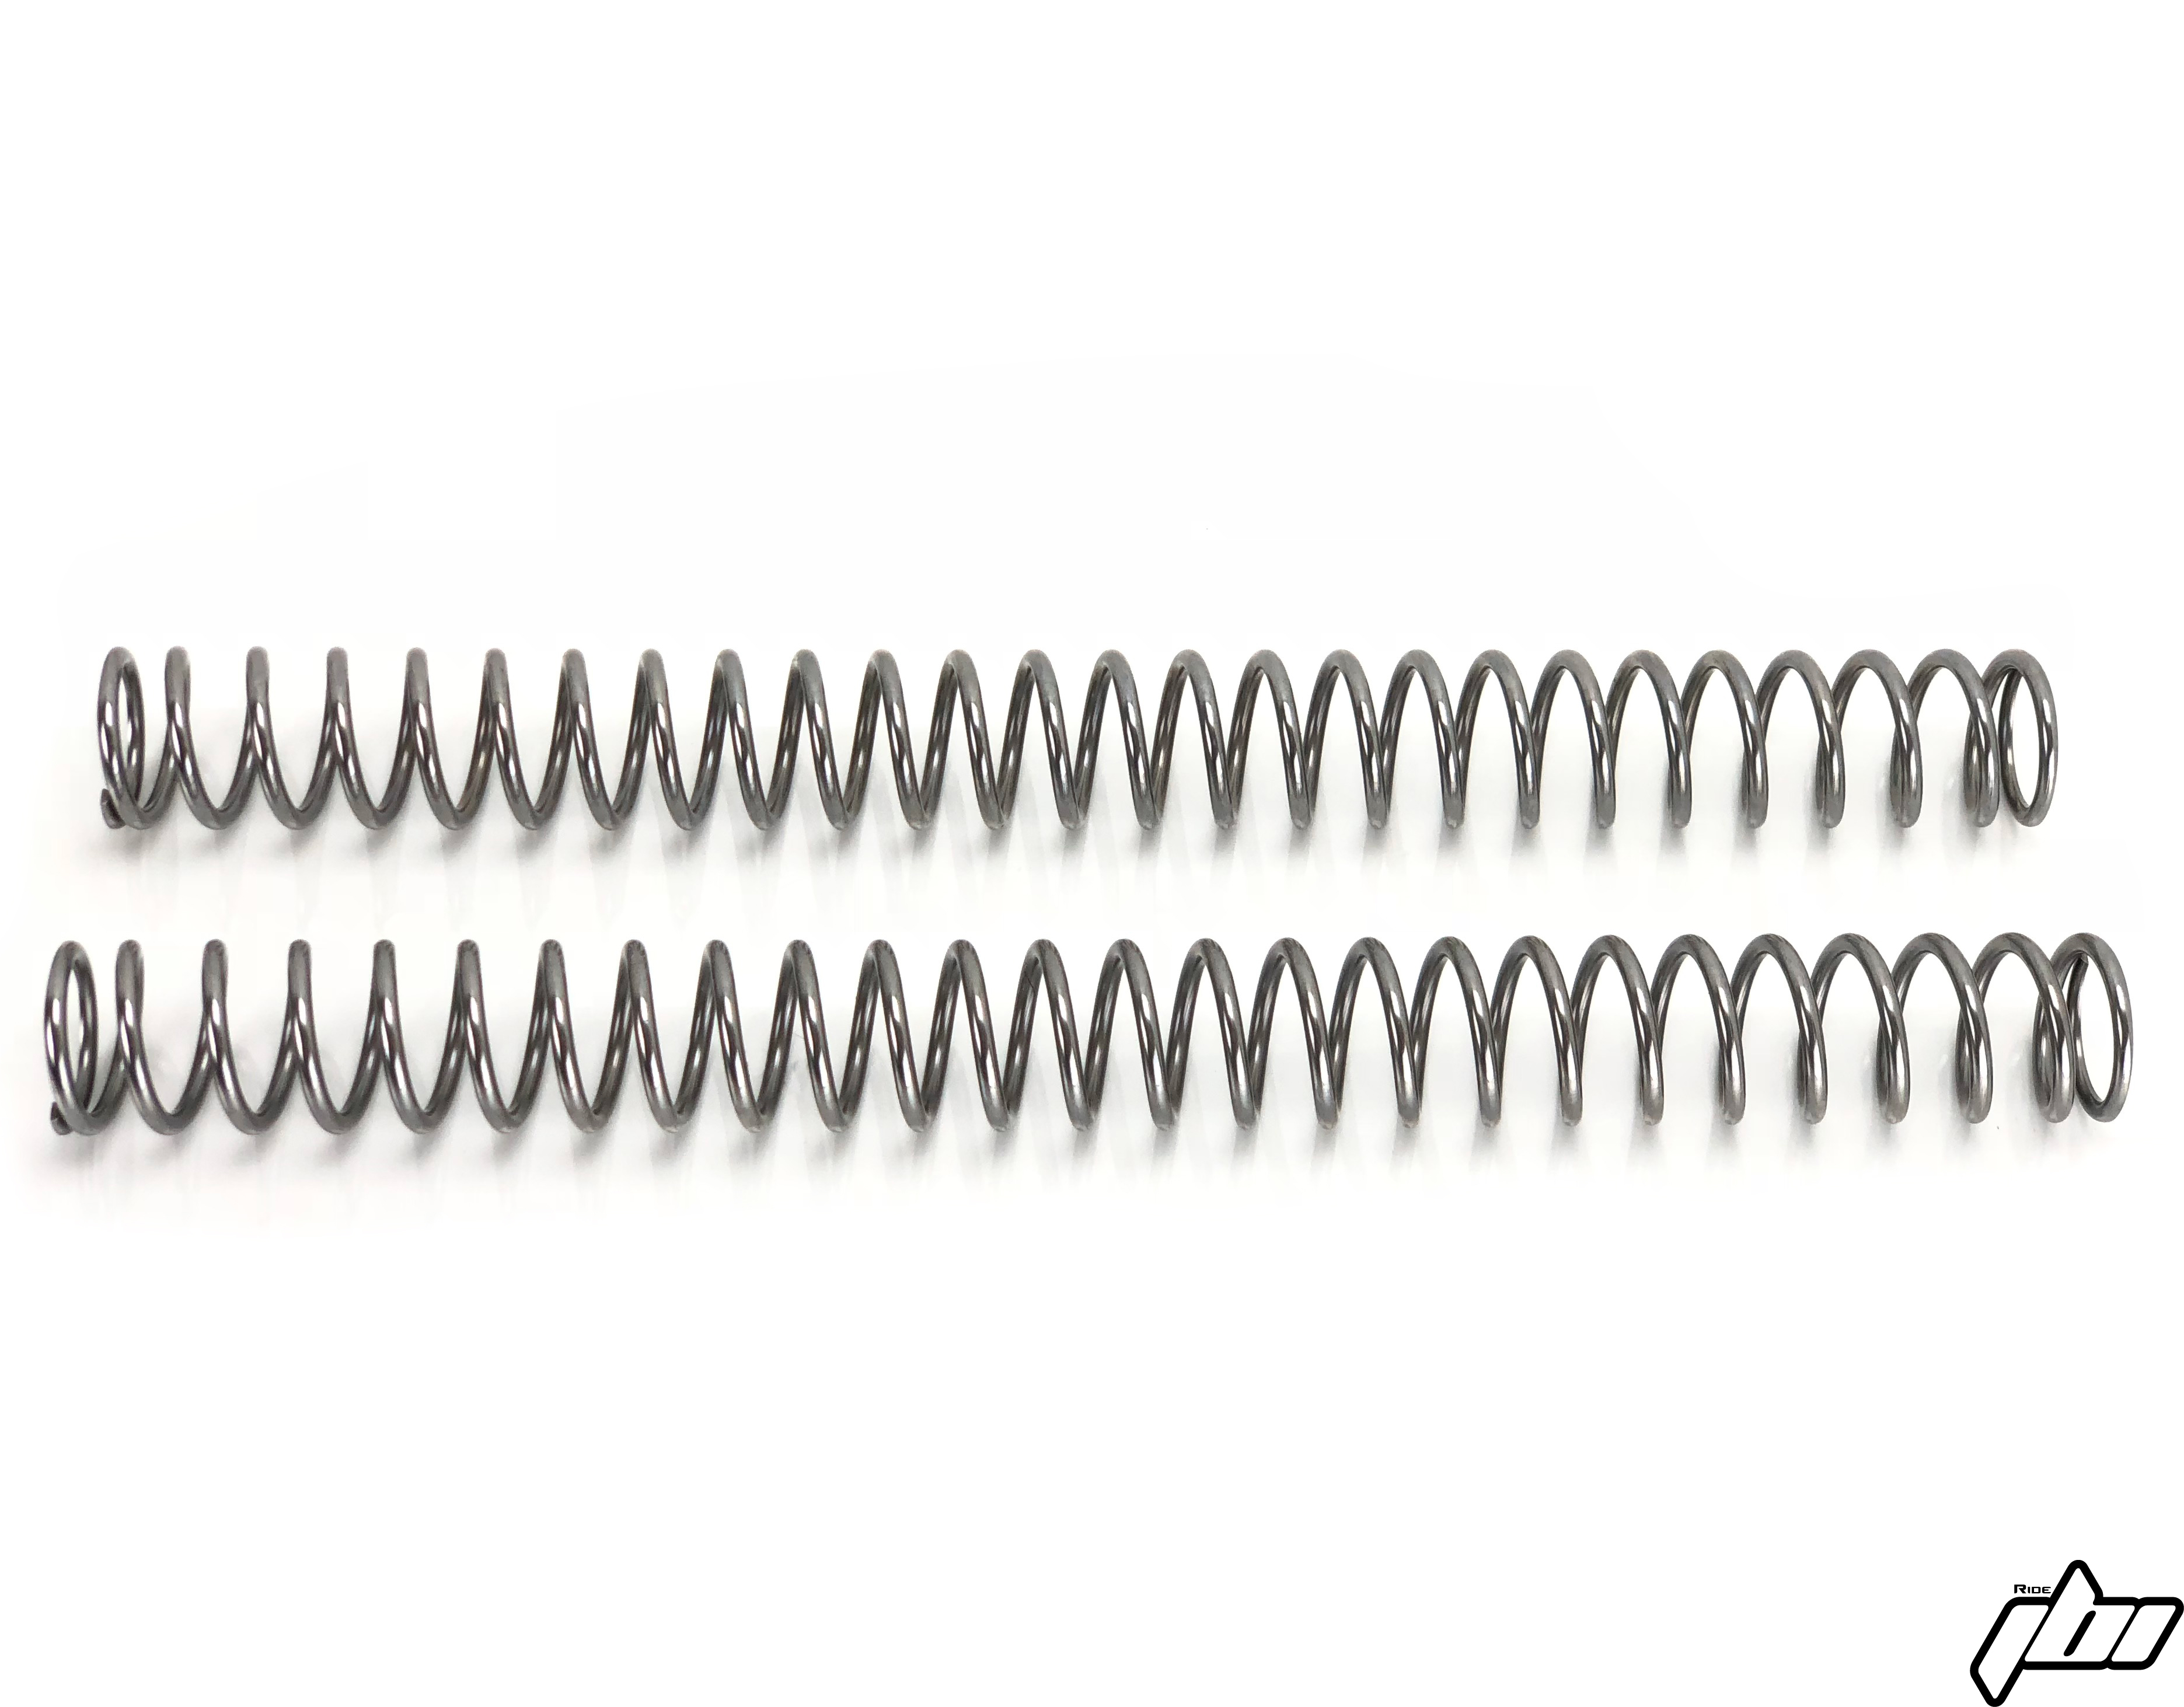 Motorcycle fork springs